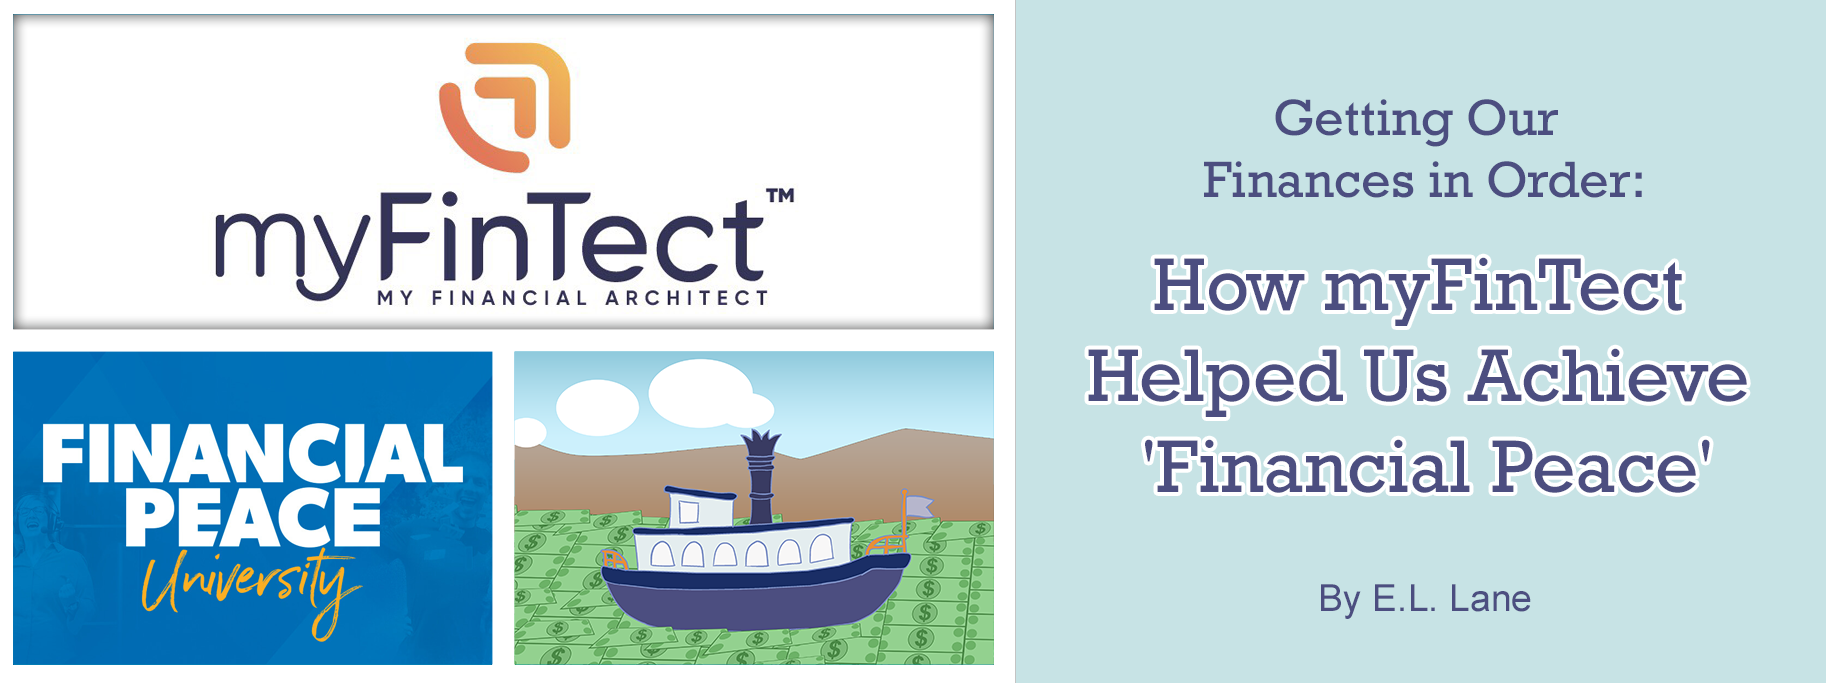 How myFinTect Helped Us Get Our Finances in Order by E. L. Lane